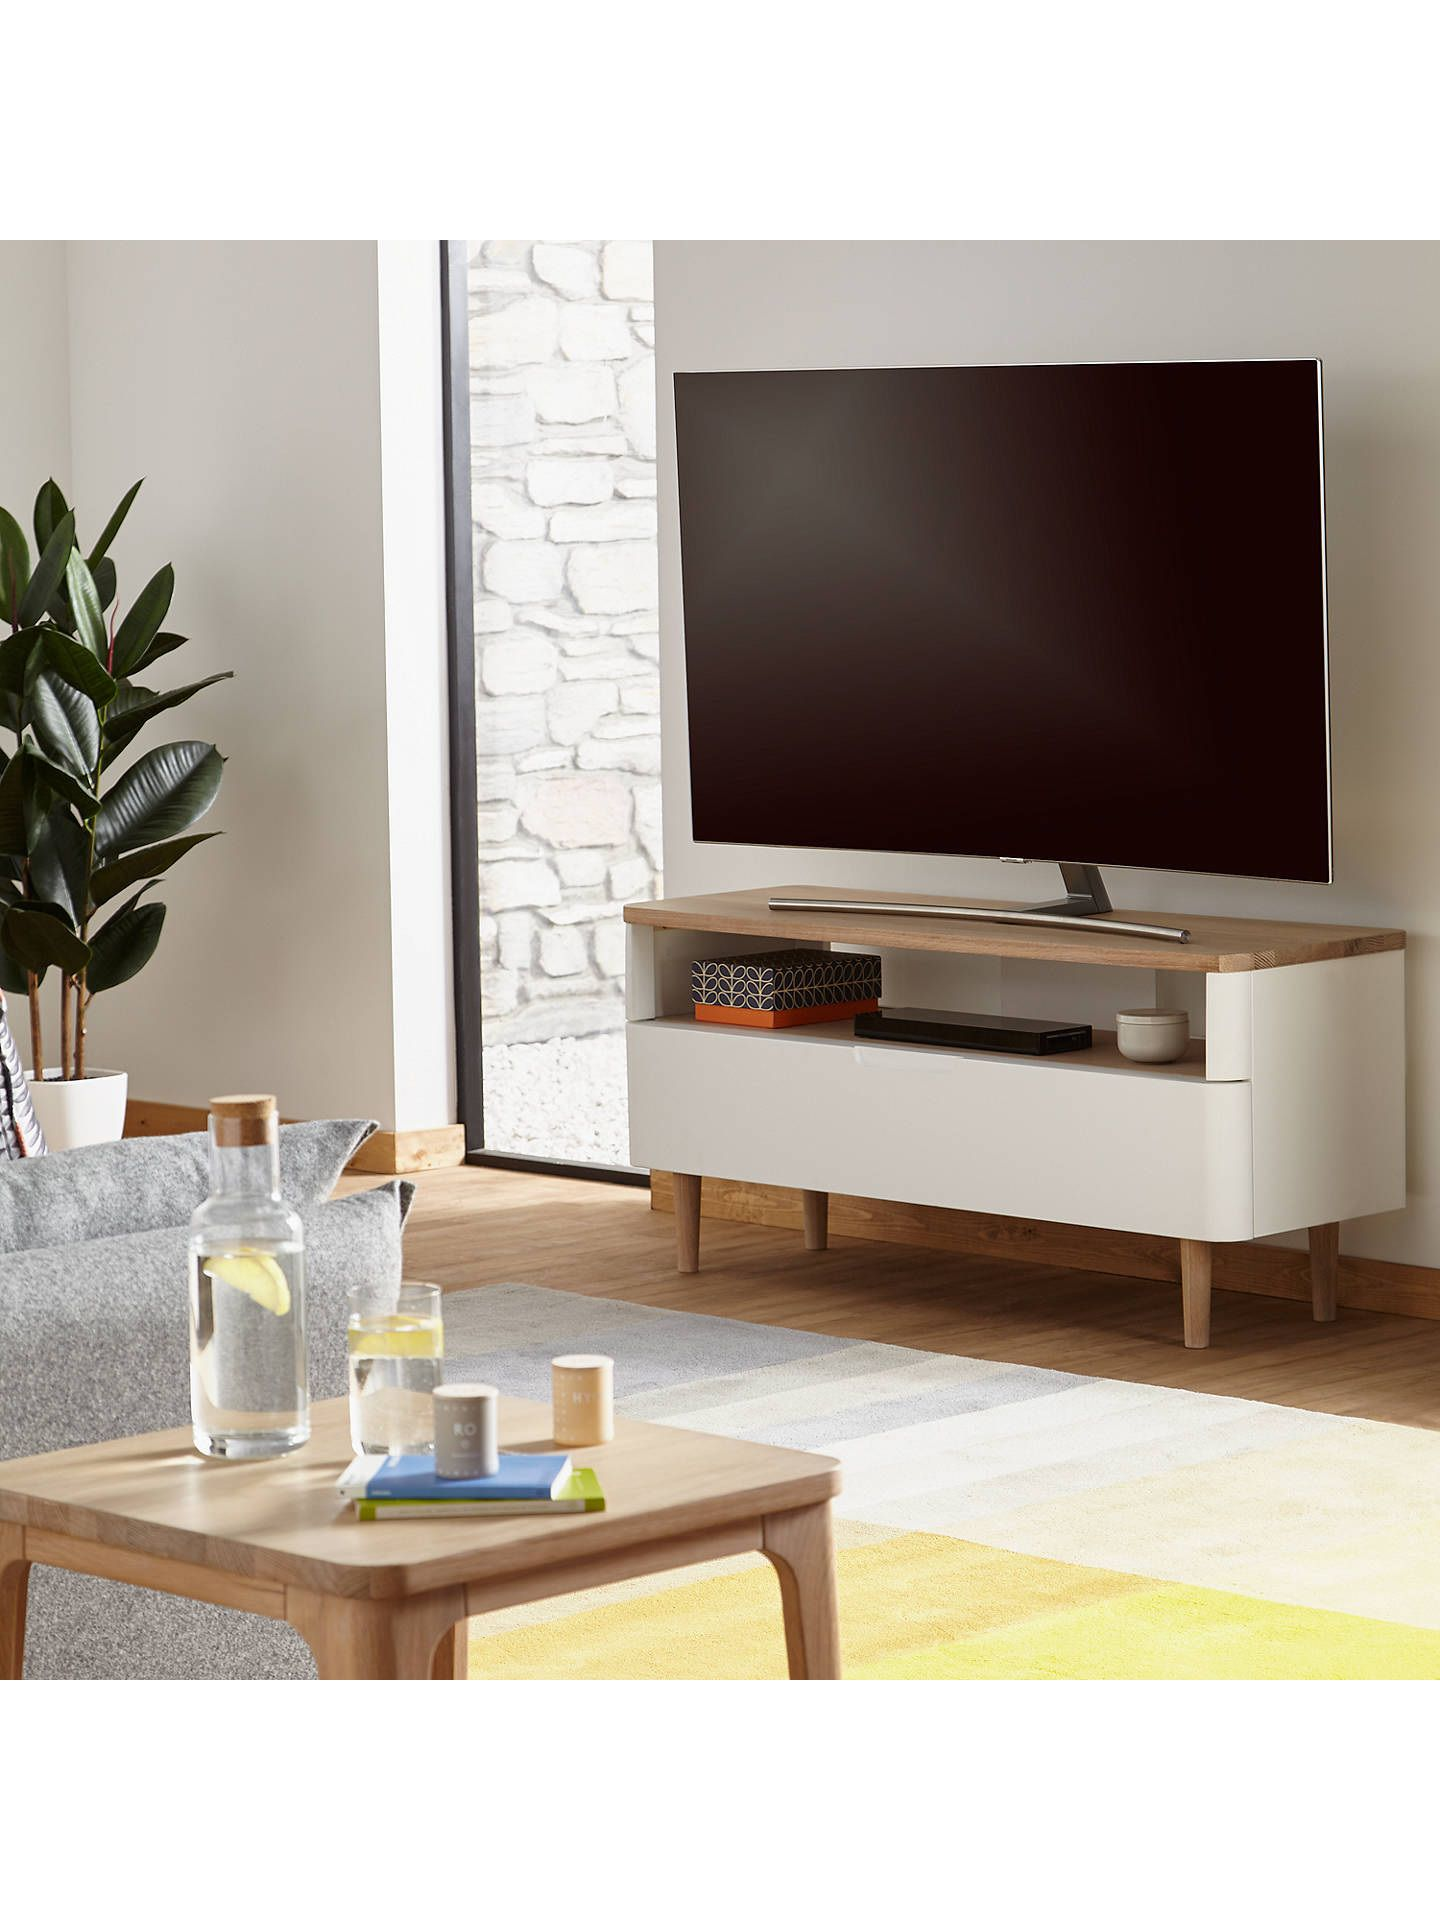 Tv Cabinet And Coffee Table Set 2021 Tv Stand Curtains With Blinds White Oak [ 1920 x 1440 Pixel ]